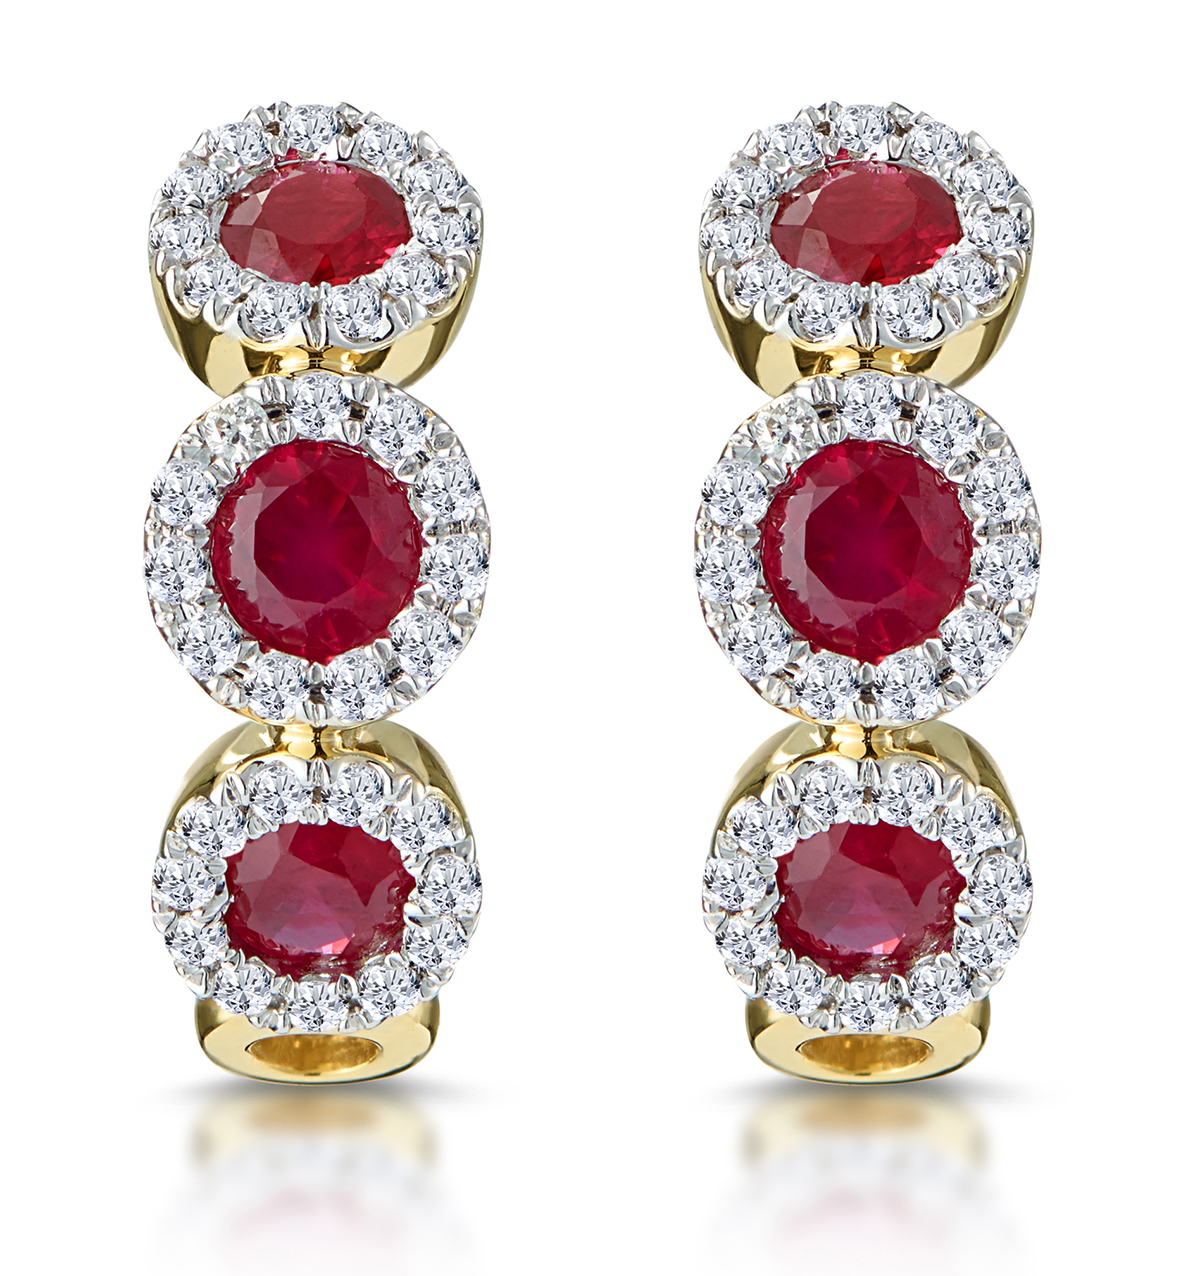 RUBY AND DIAMOND TRILOGY EARRINGS IN 18K GOLD - ASTERIA COLLECTION